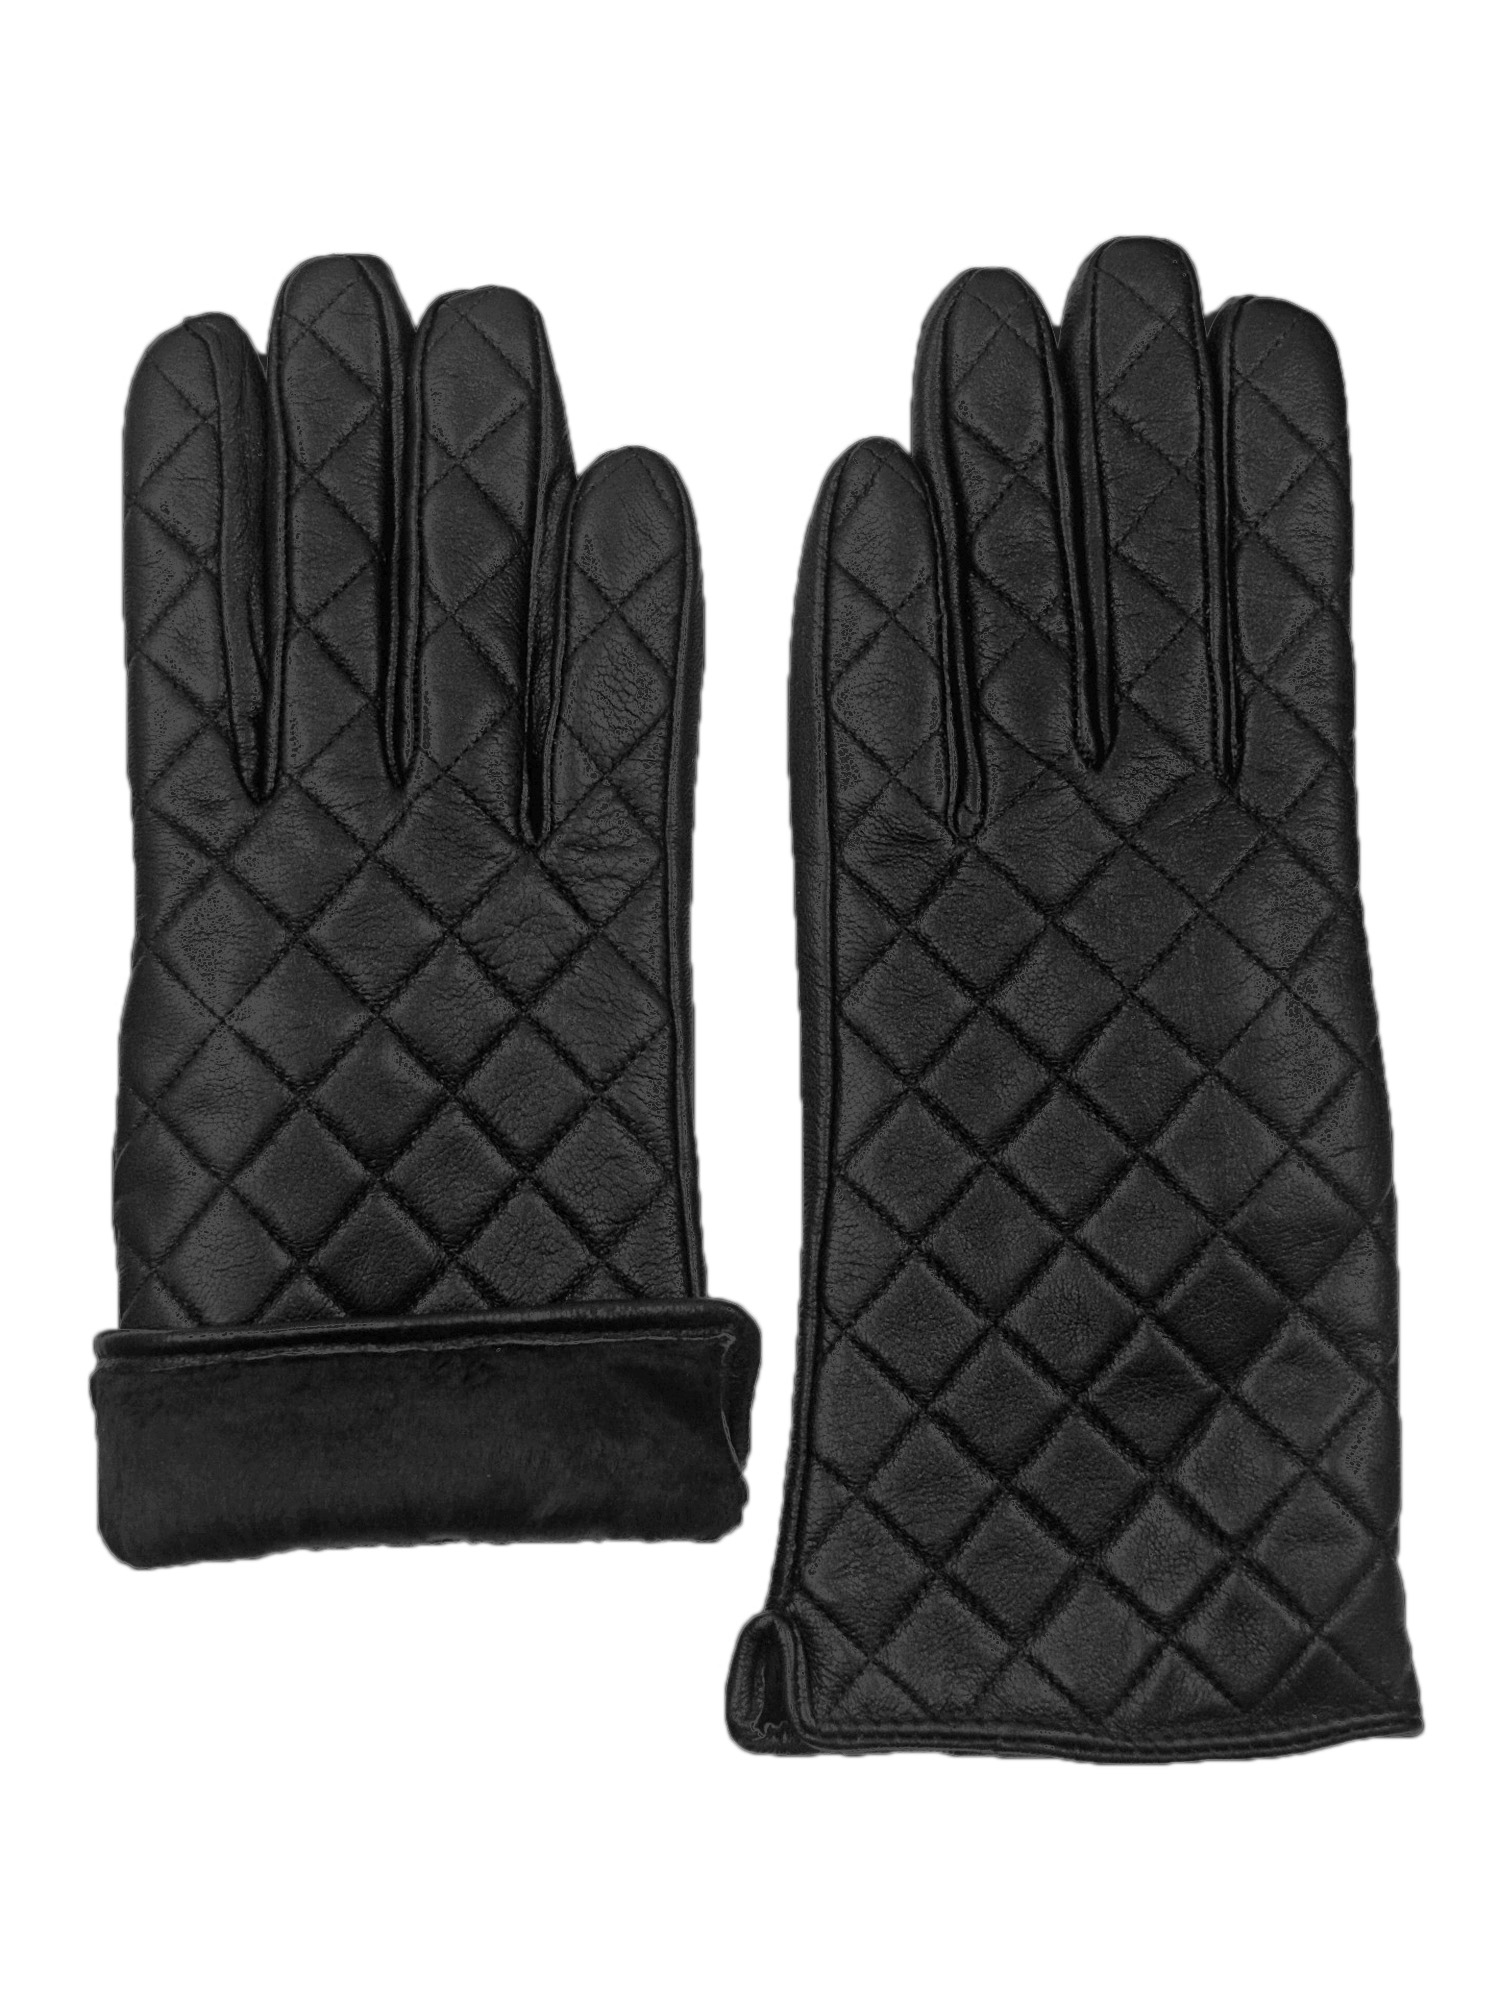 Giromy-Samoni-Womens-Warm-Winter-Leather-Quilted-Dress-Driving-Gloves-Black thumbnail 14